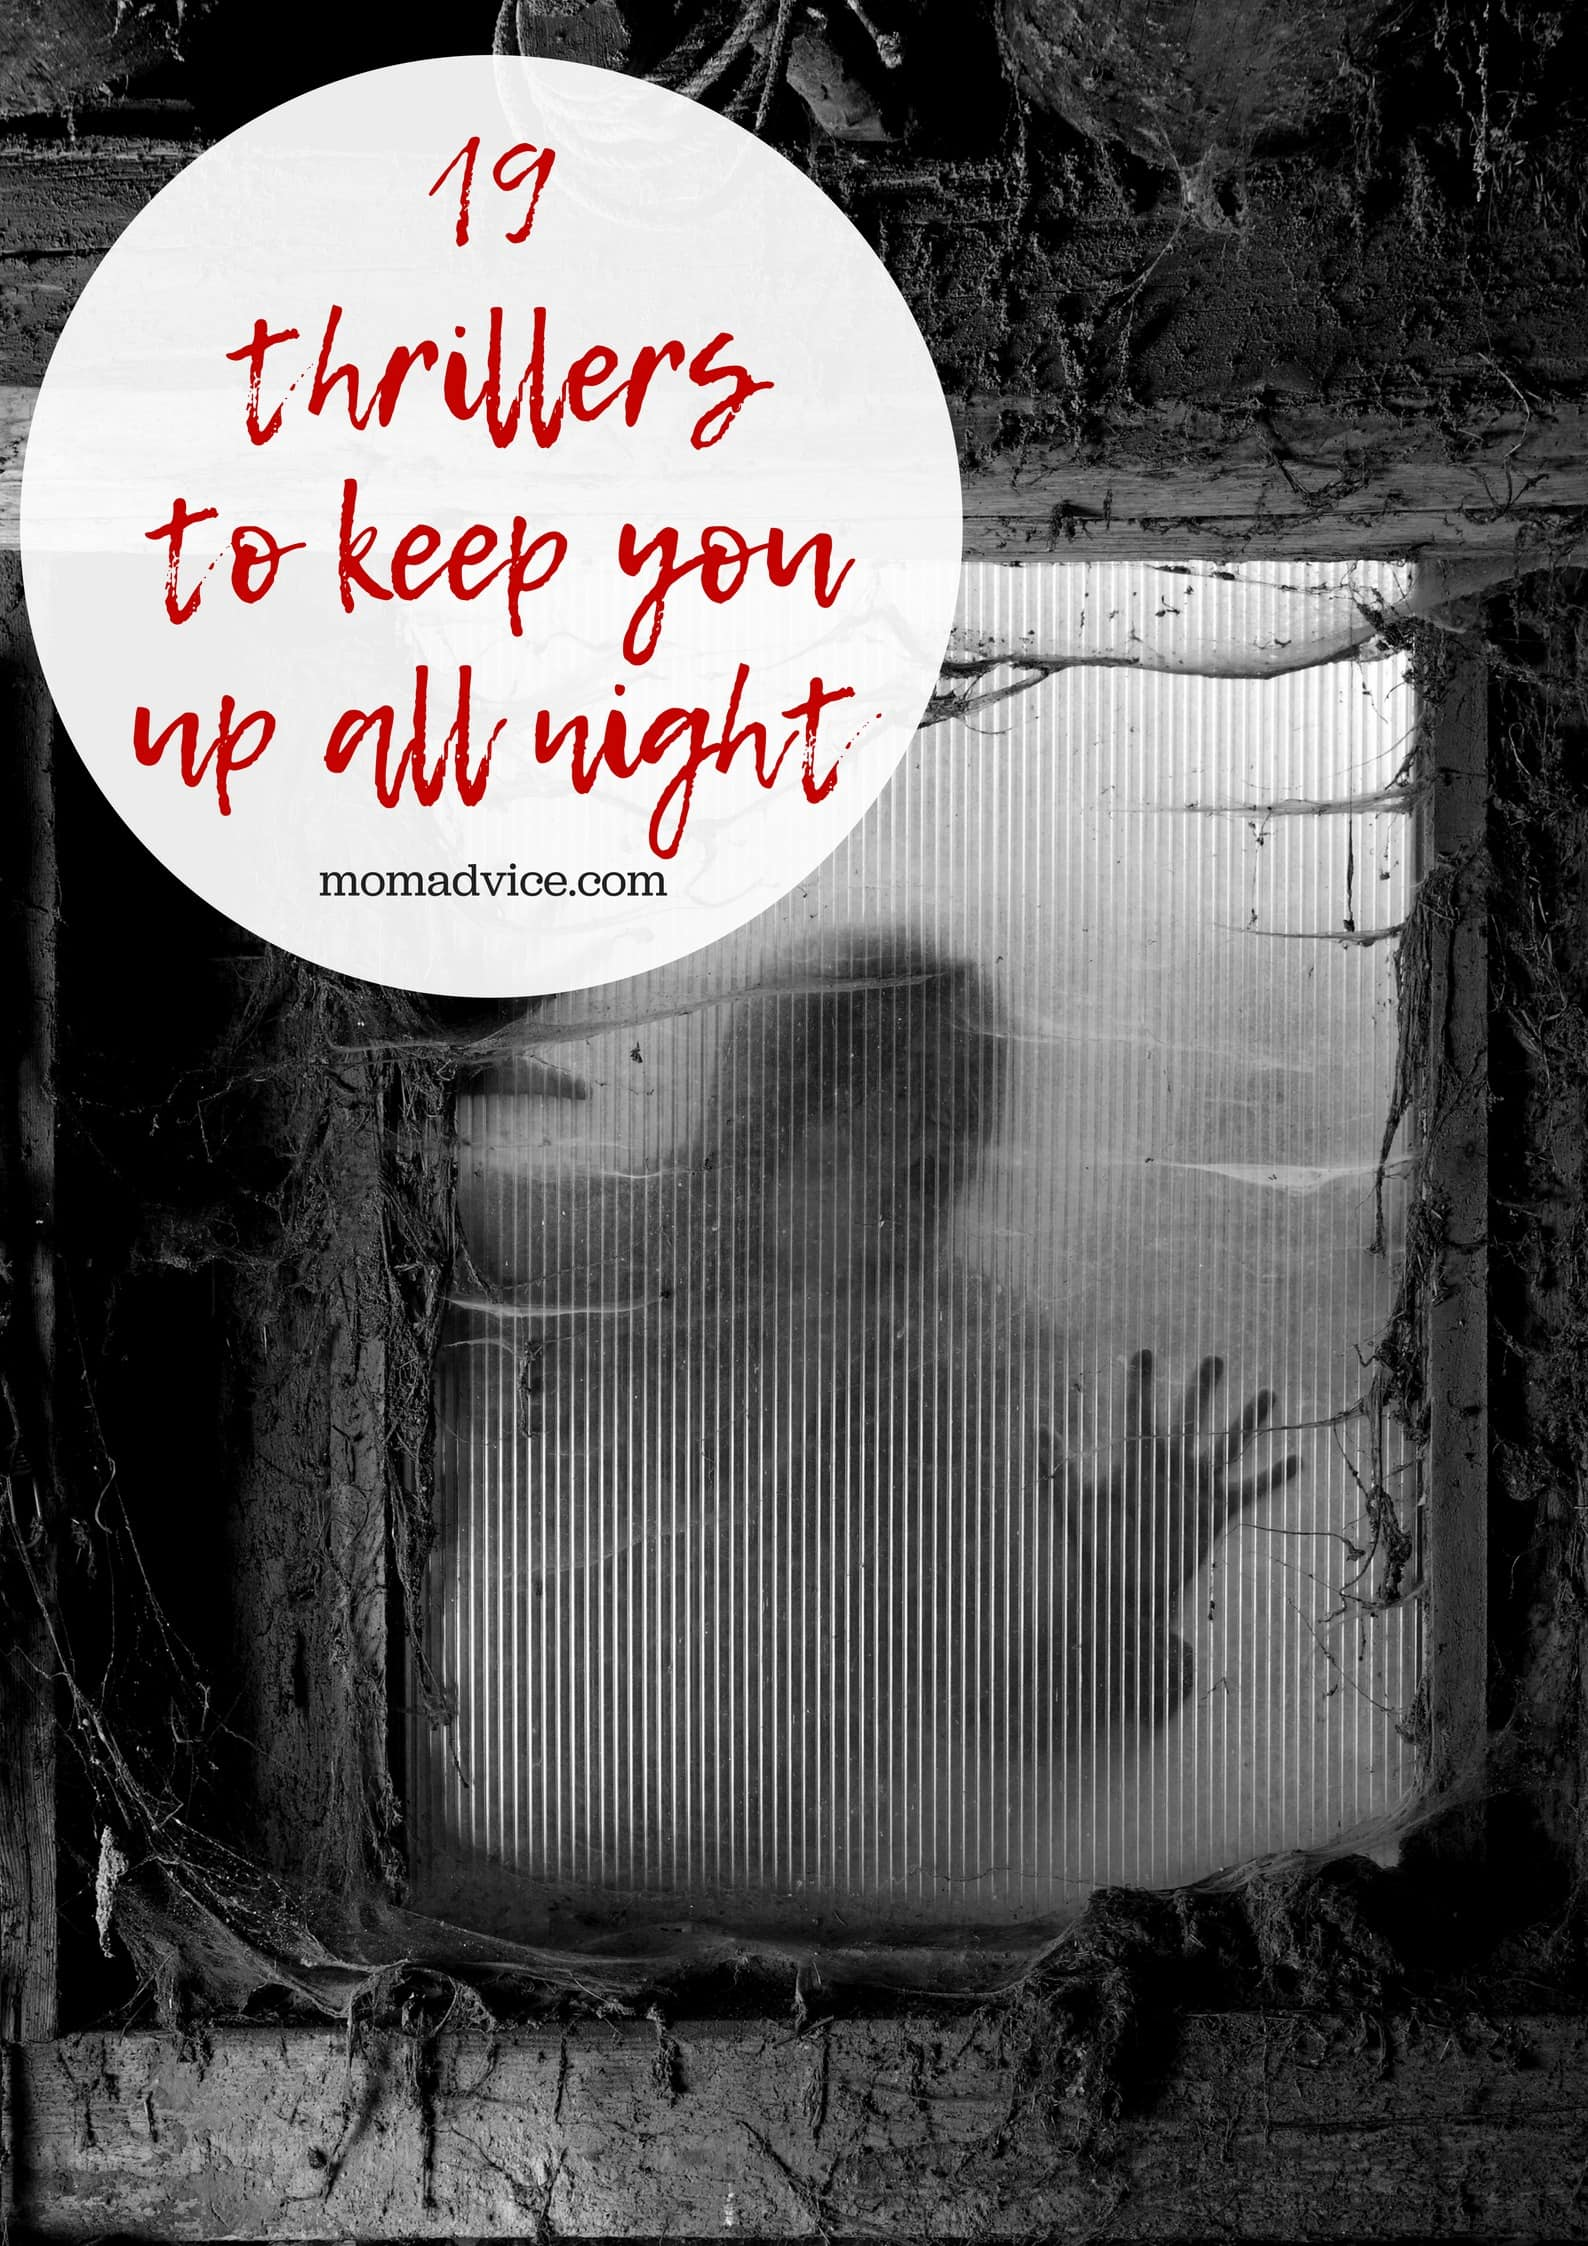 19 Thrillers to Keep You Up All Night from MomAdvice.com